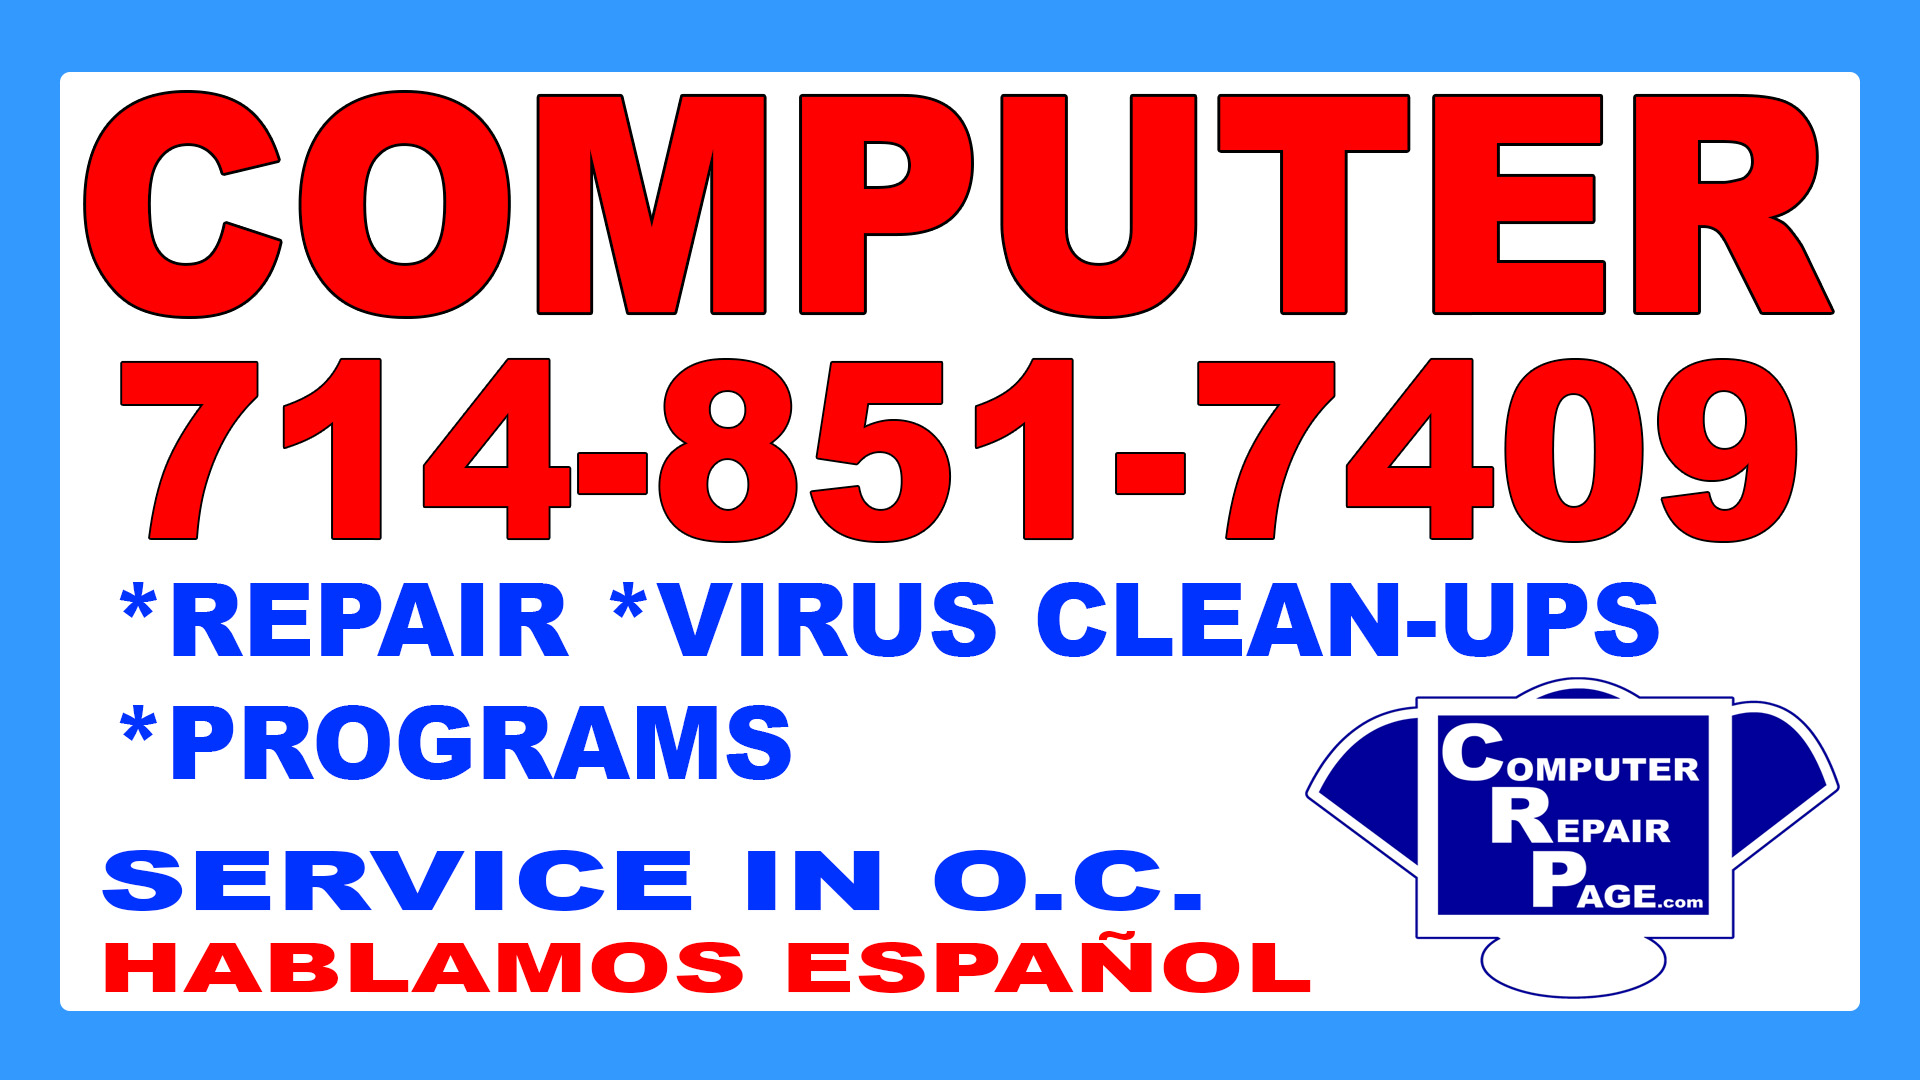 Computer Repair Service in Santa Ana CA, and Orange County